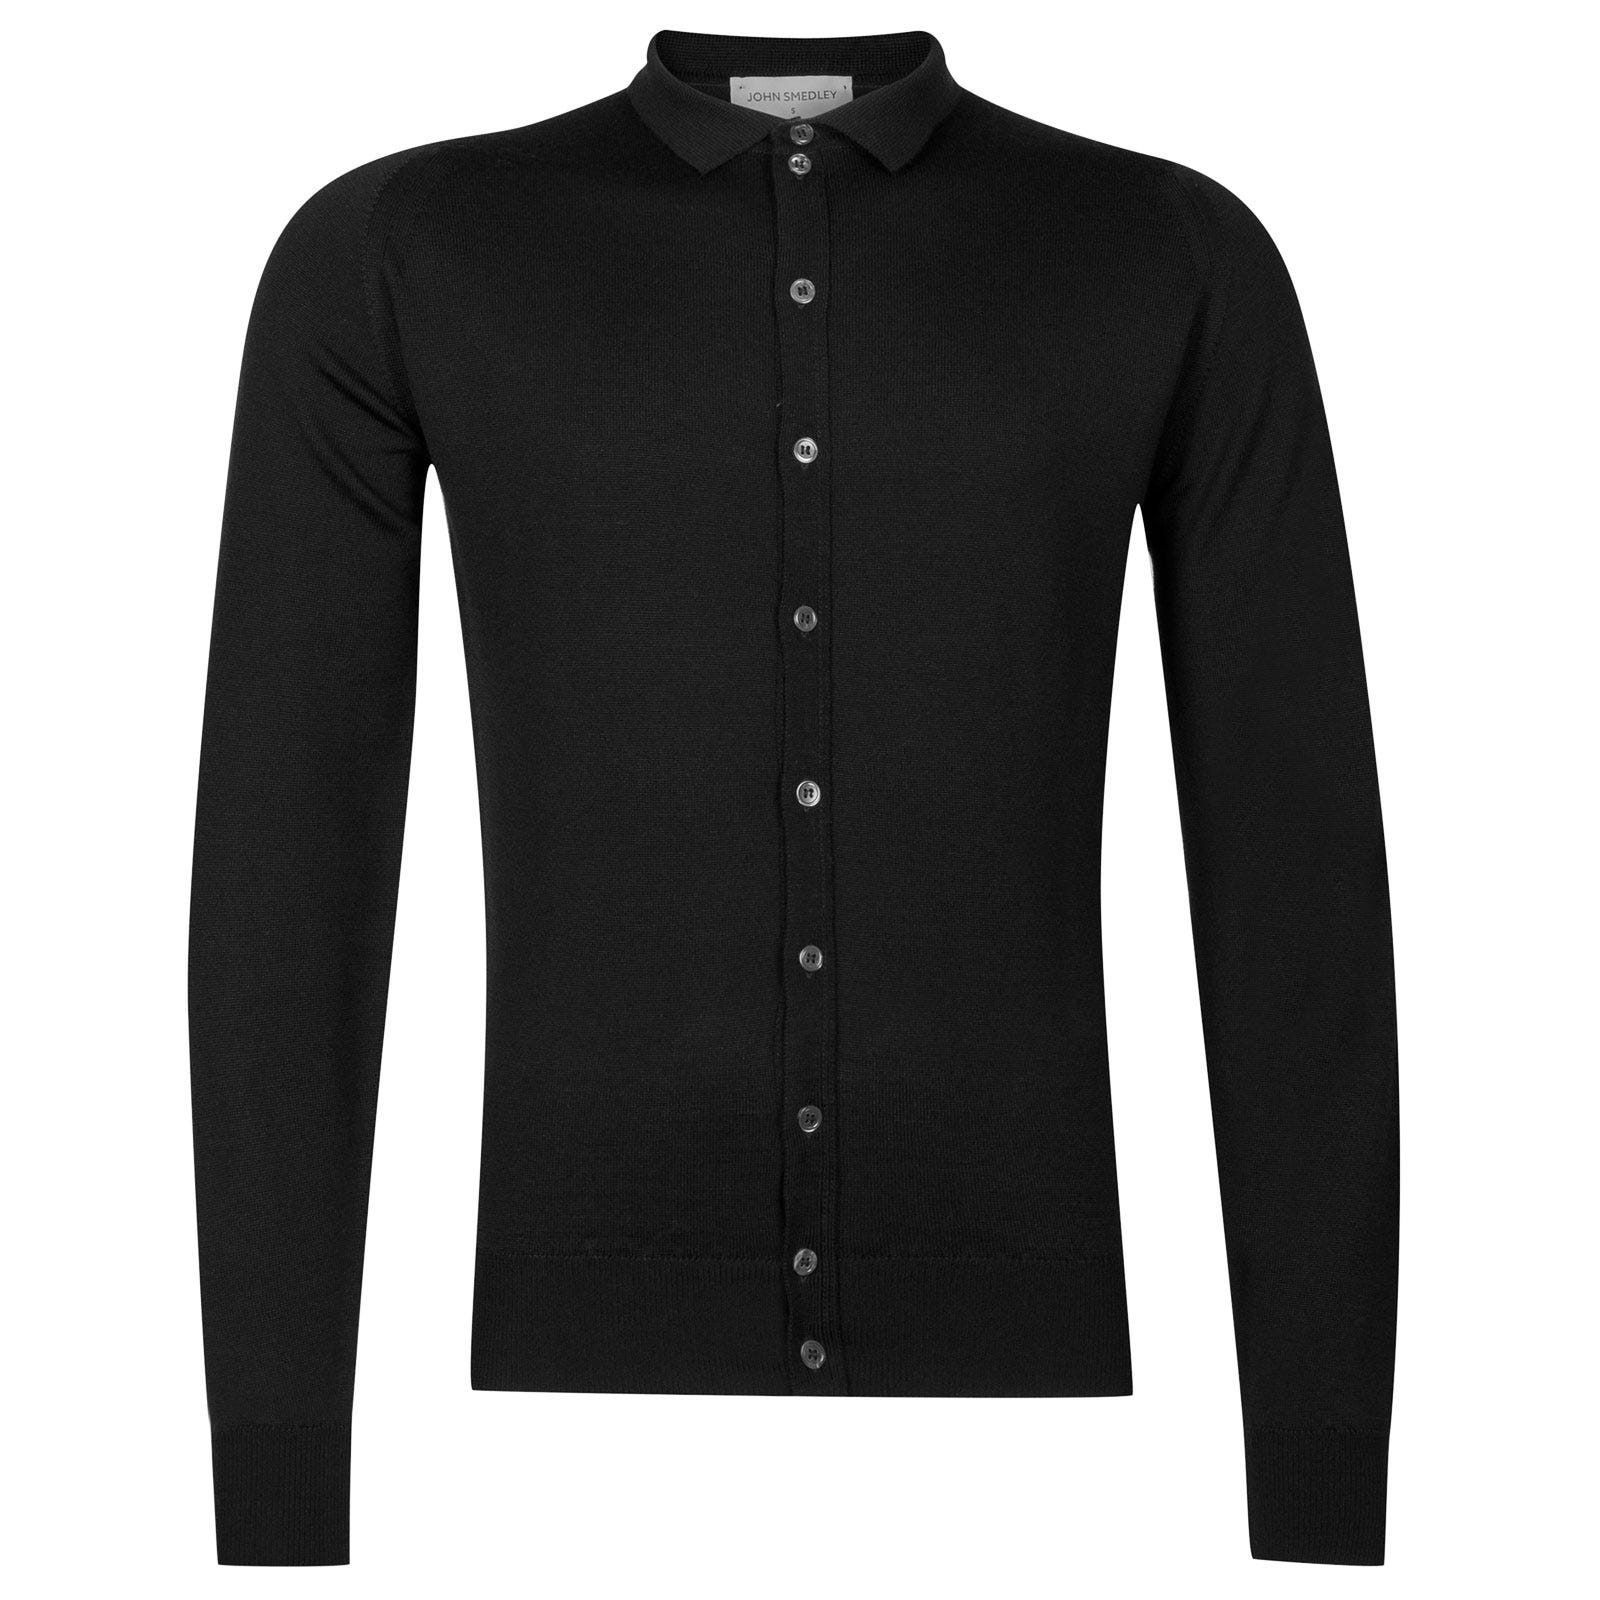 John Smedley parwish Merino Wool Shirt in Black-M